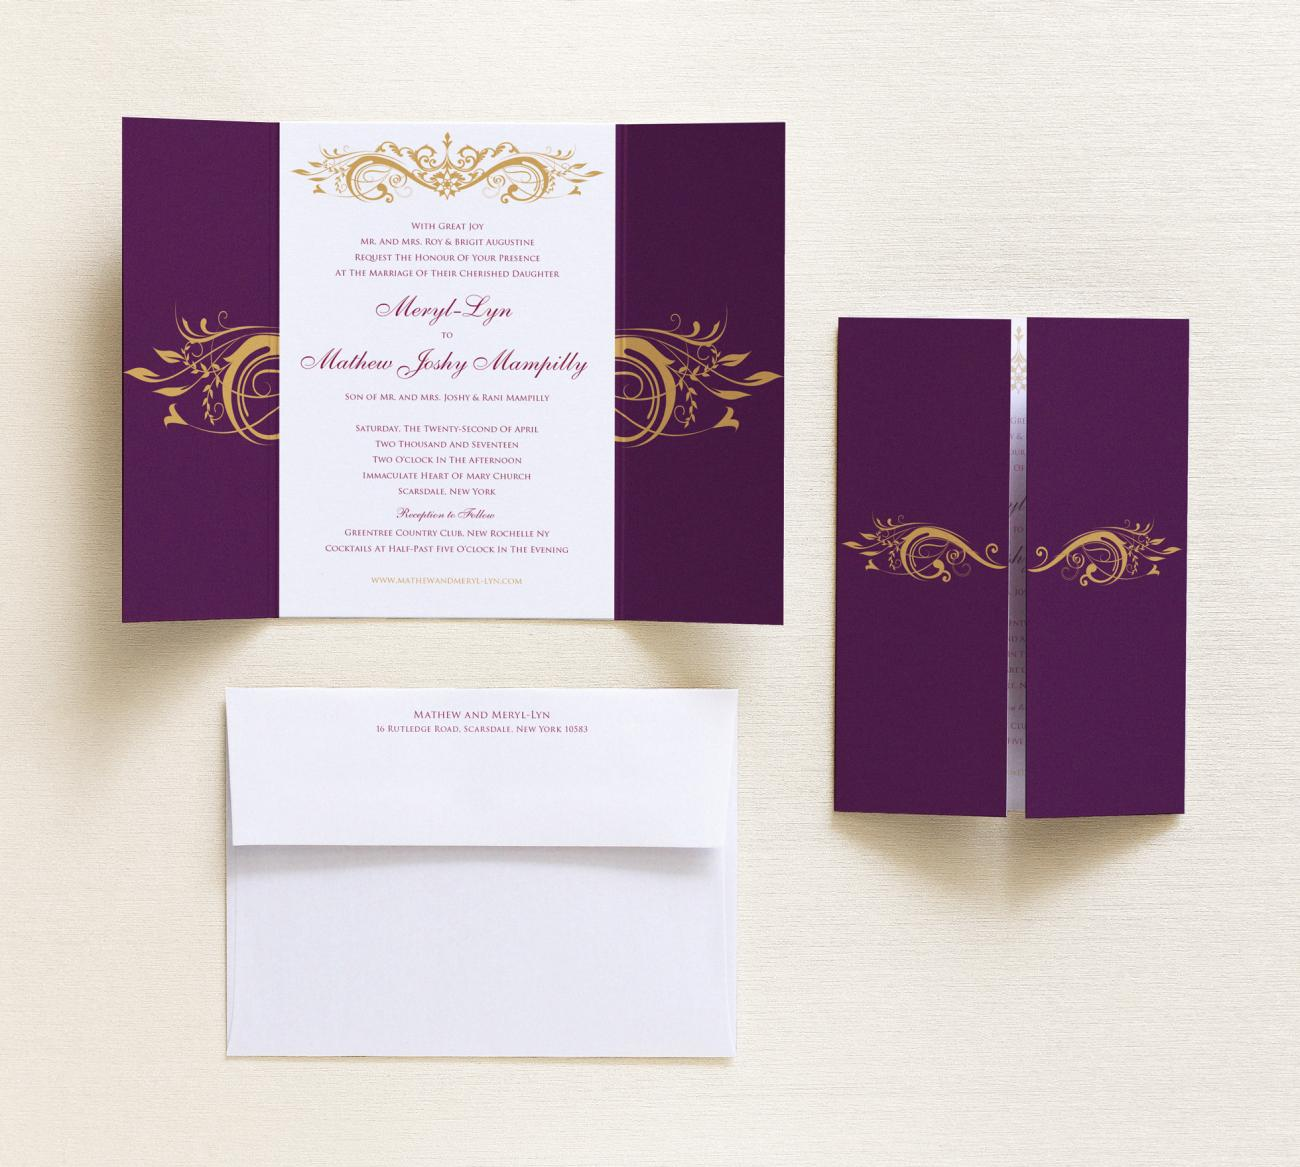 Invitation + Envelope | Majesty Gatefold